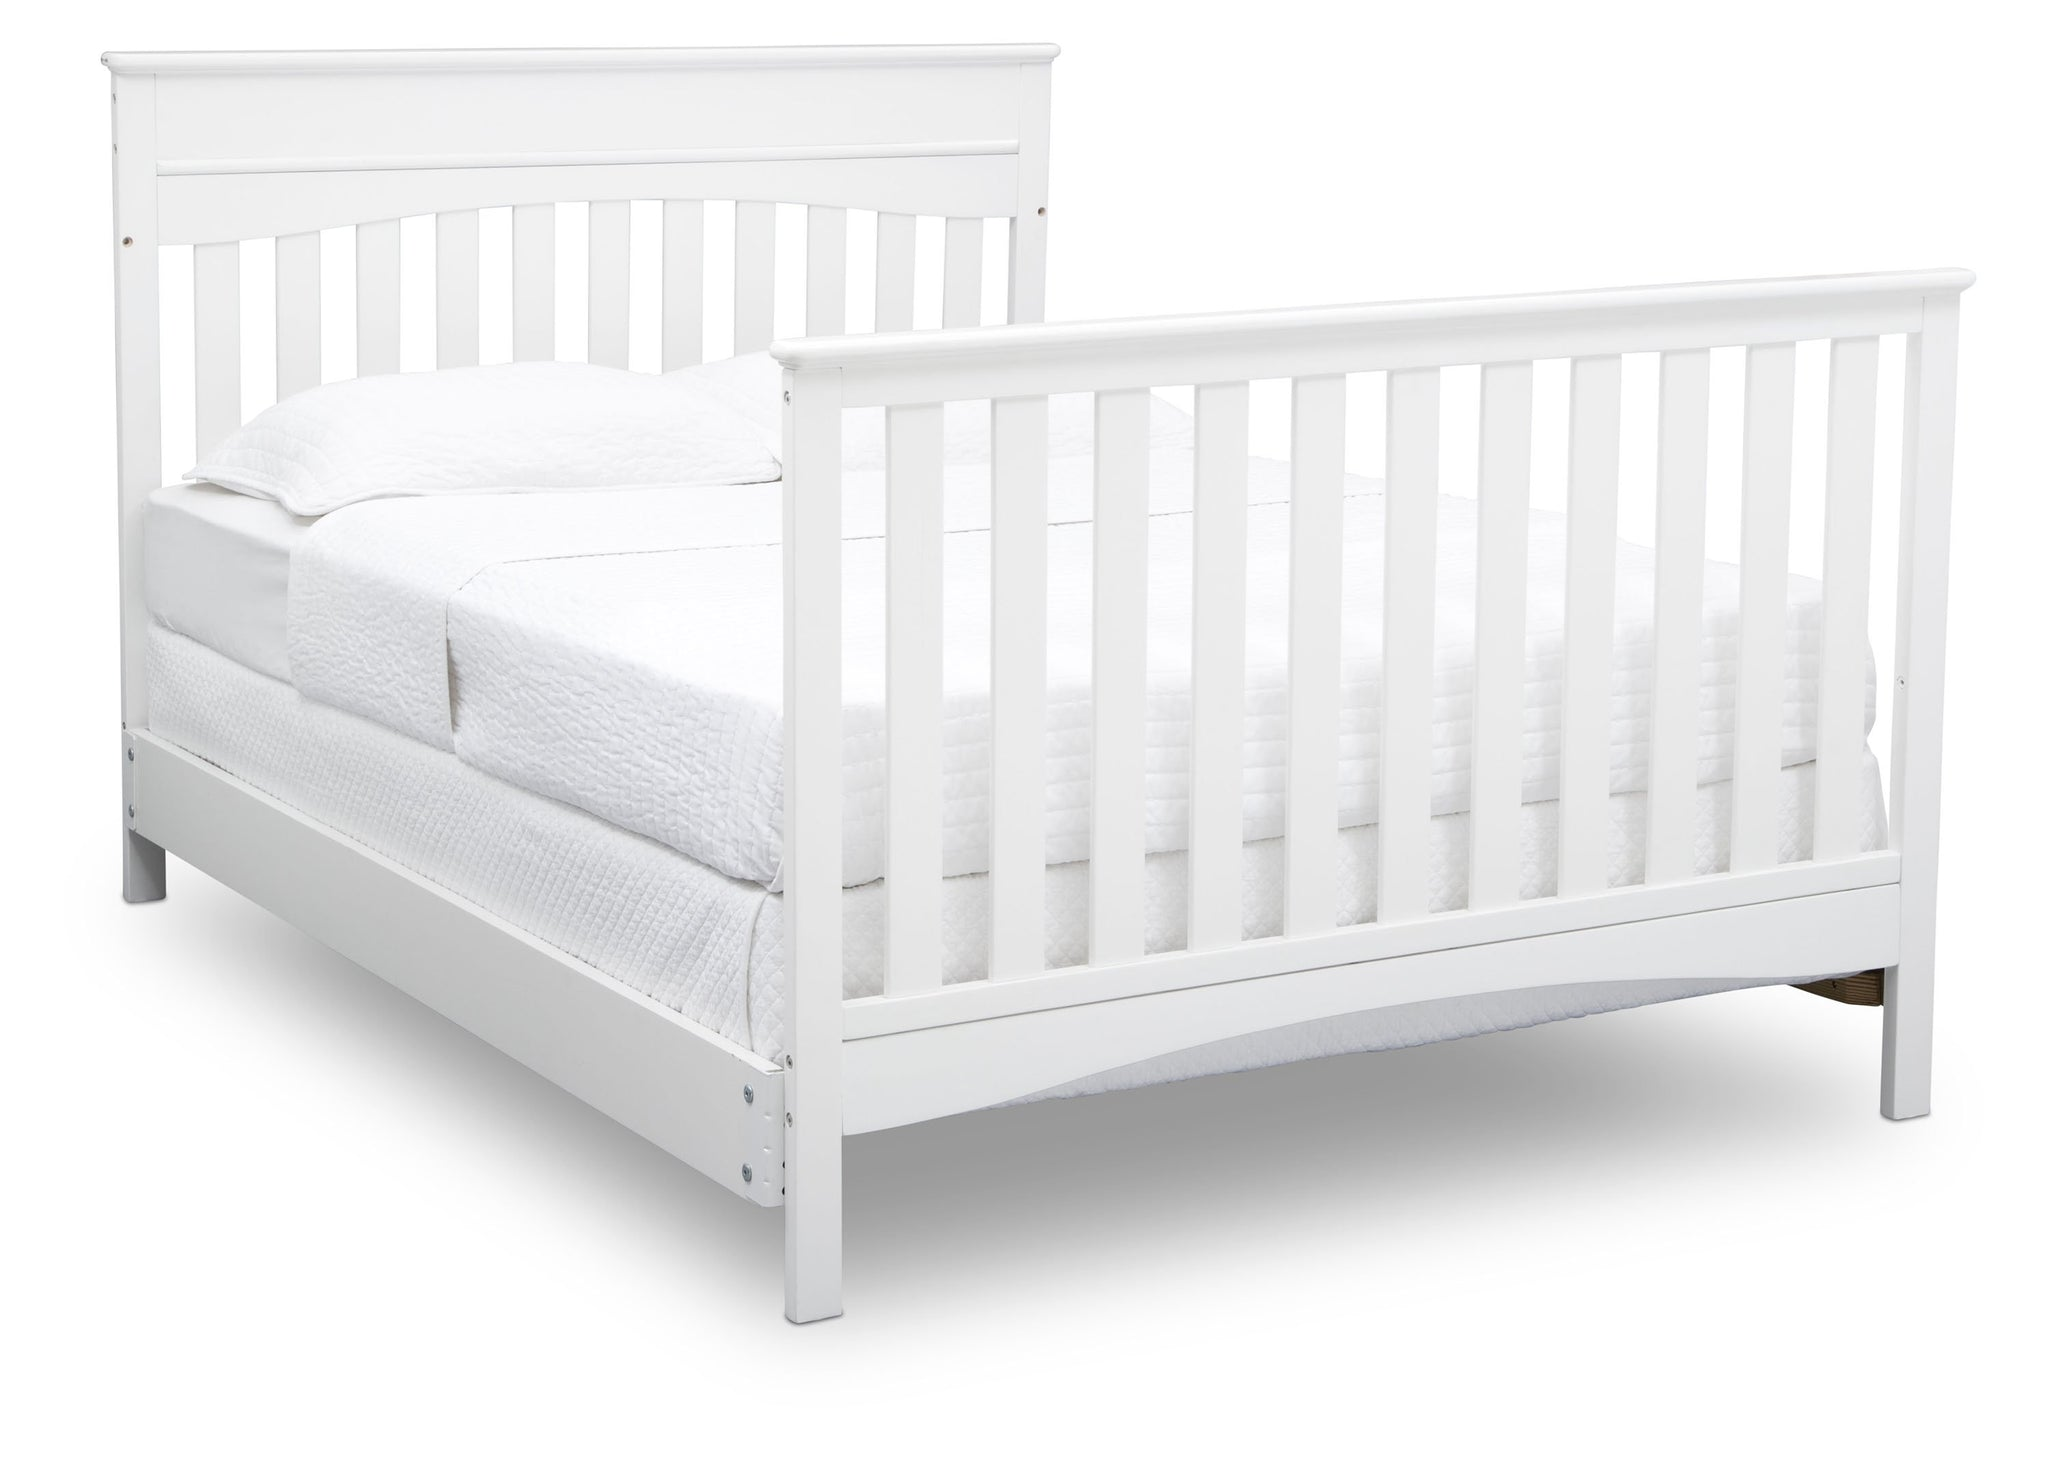 Delta Children Bianca White (130) Skylar 4-in-1 Convertible Crib (558150), Full Size Bed with Footboard, c5c